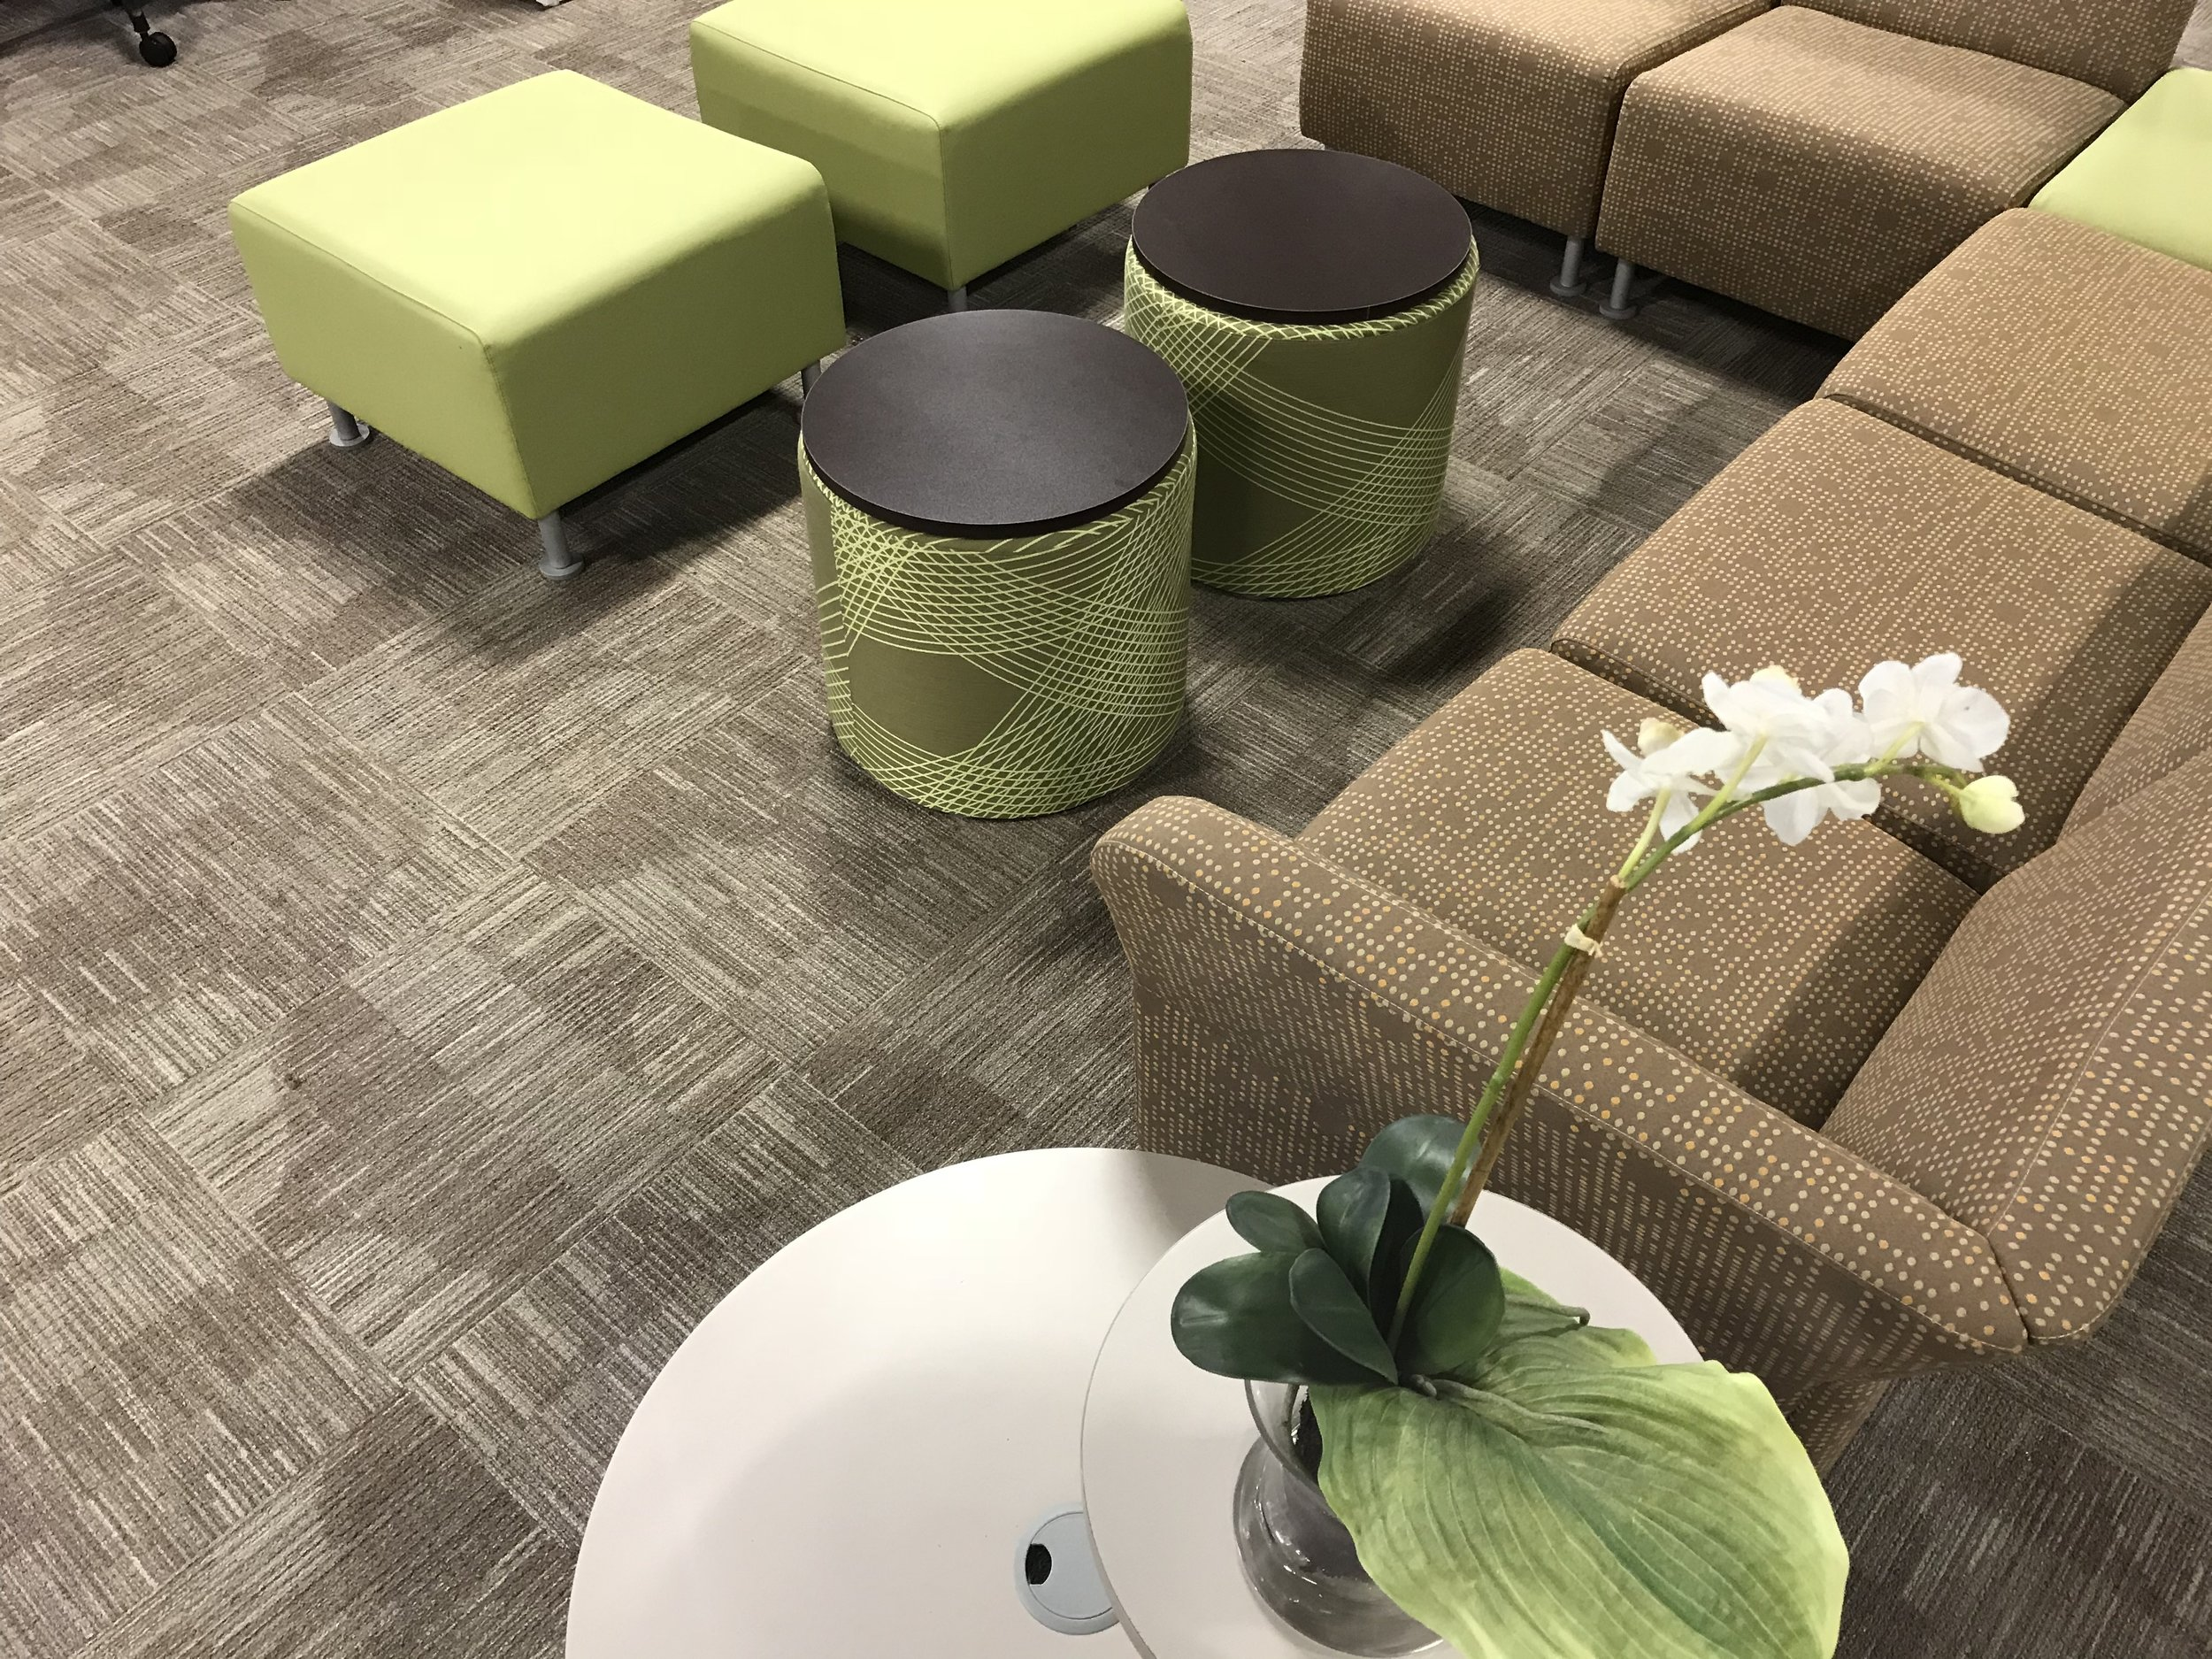 office design services and consultation